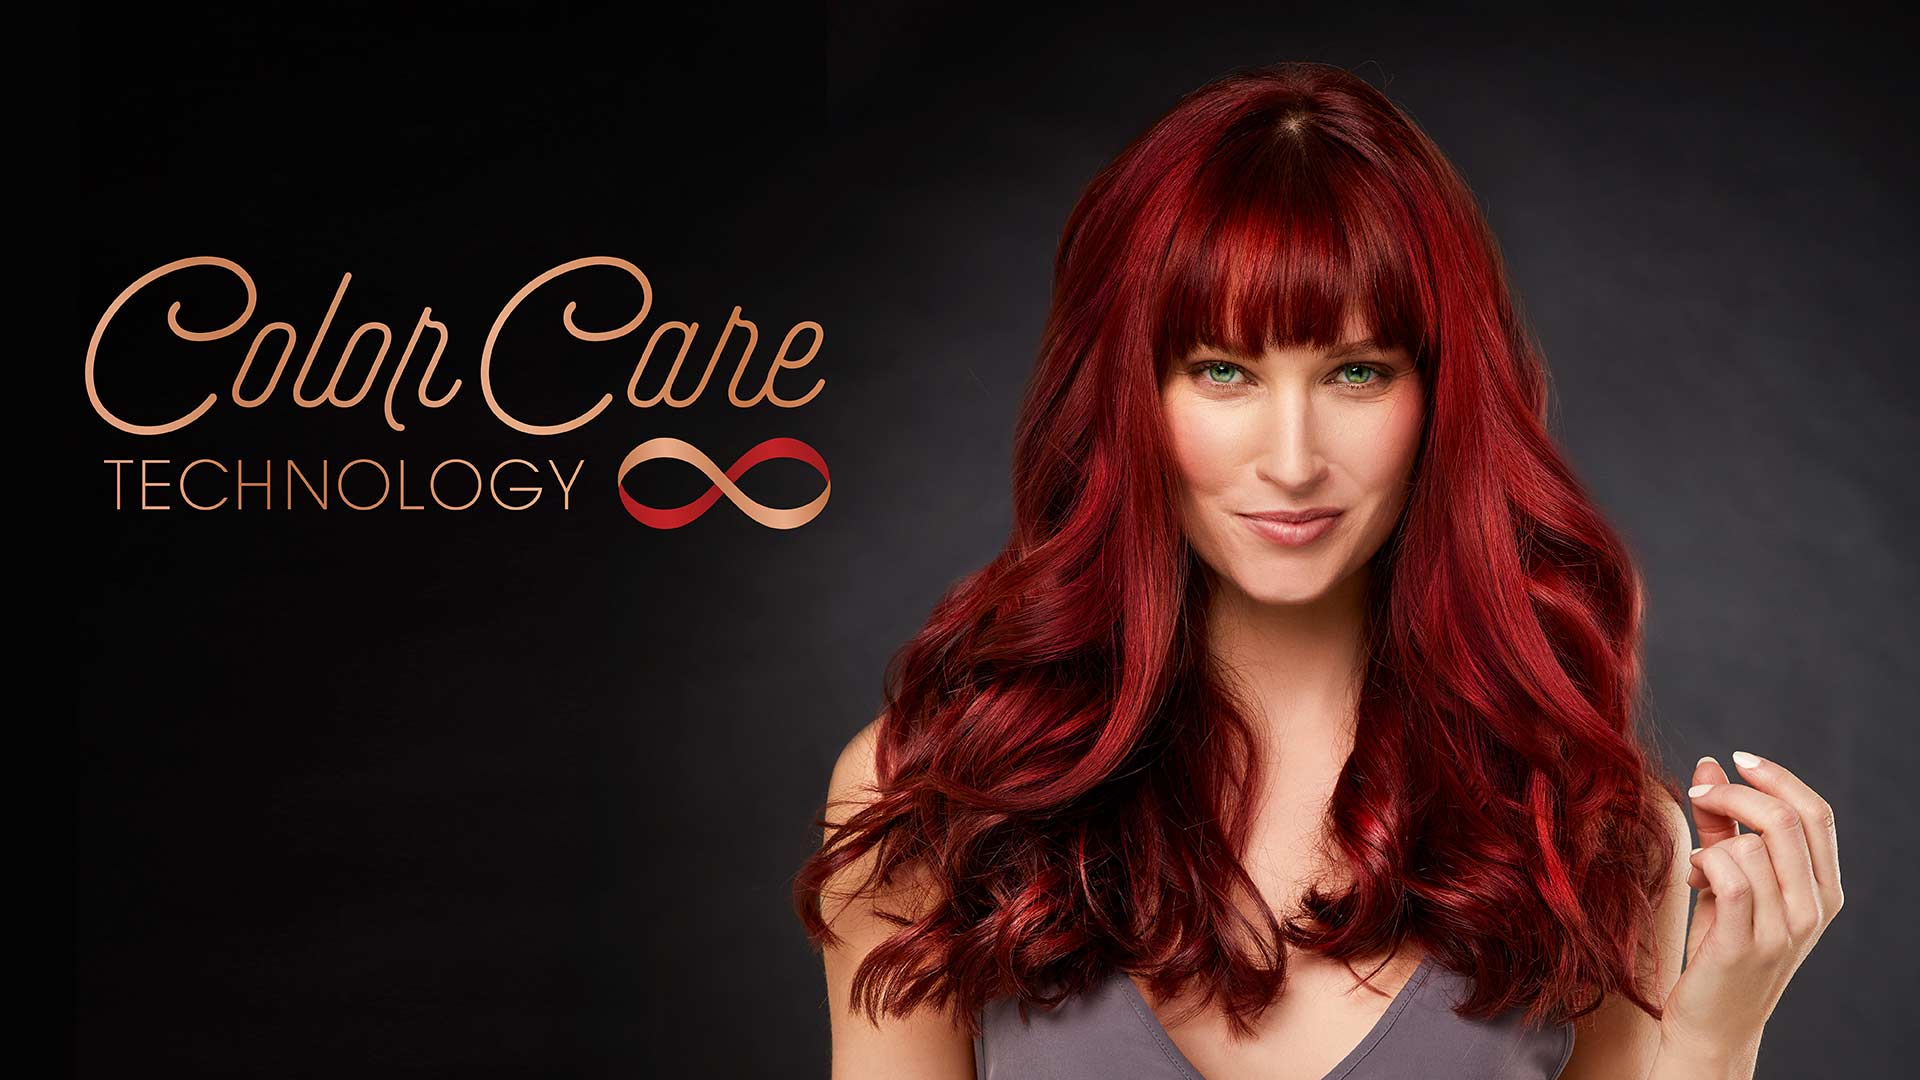 Color Care Collection Homepage Video Thumbnail